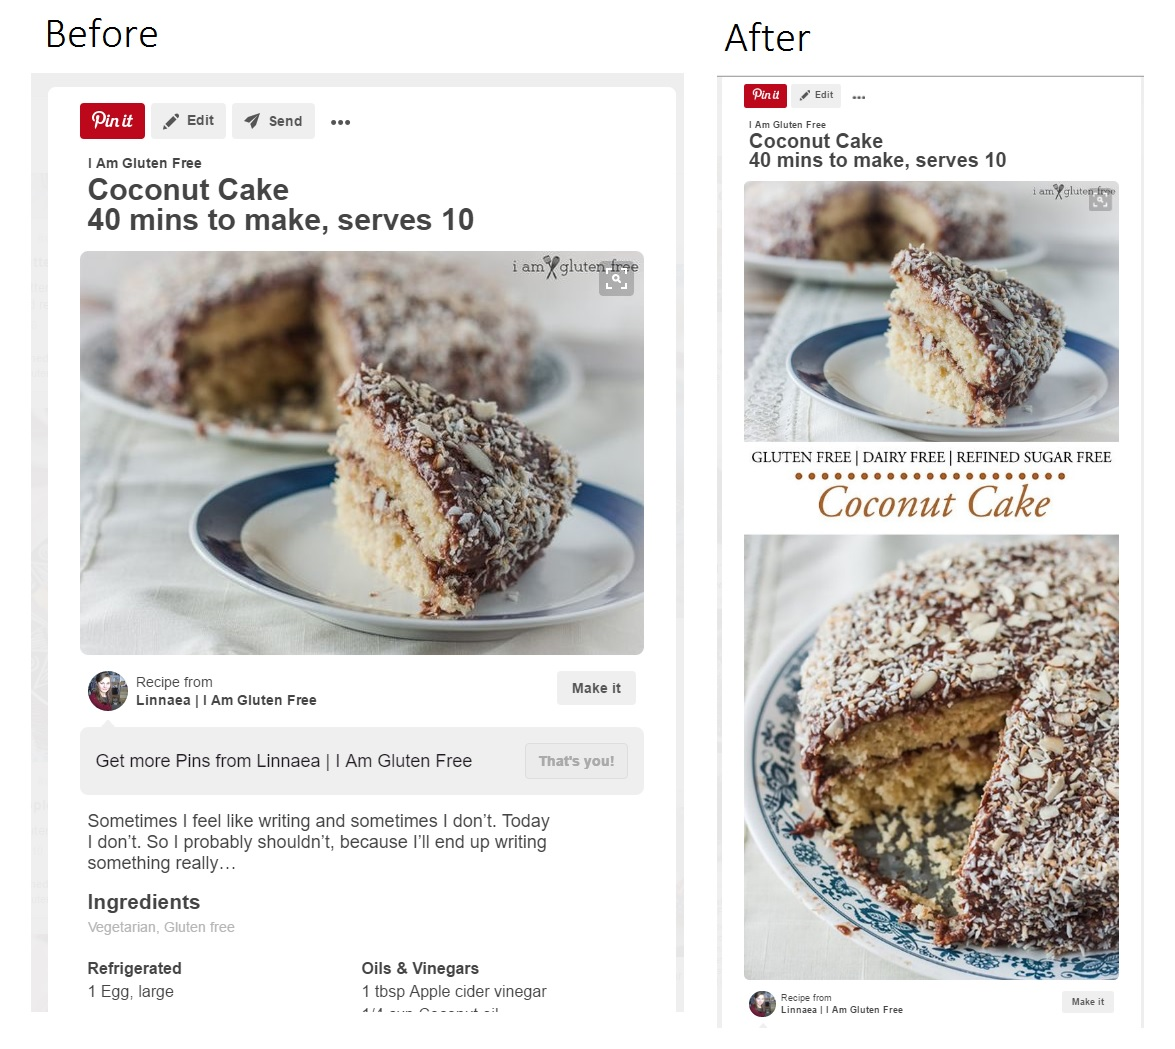 How to Optimize Your Pins for Pinterest (Pinterest for Food Bloggers Part 3)